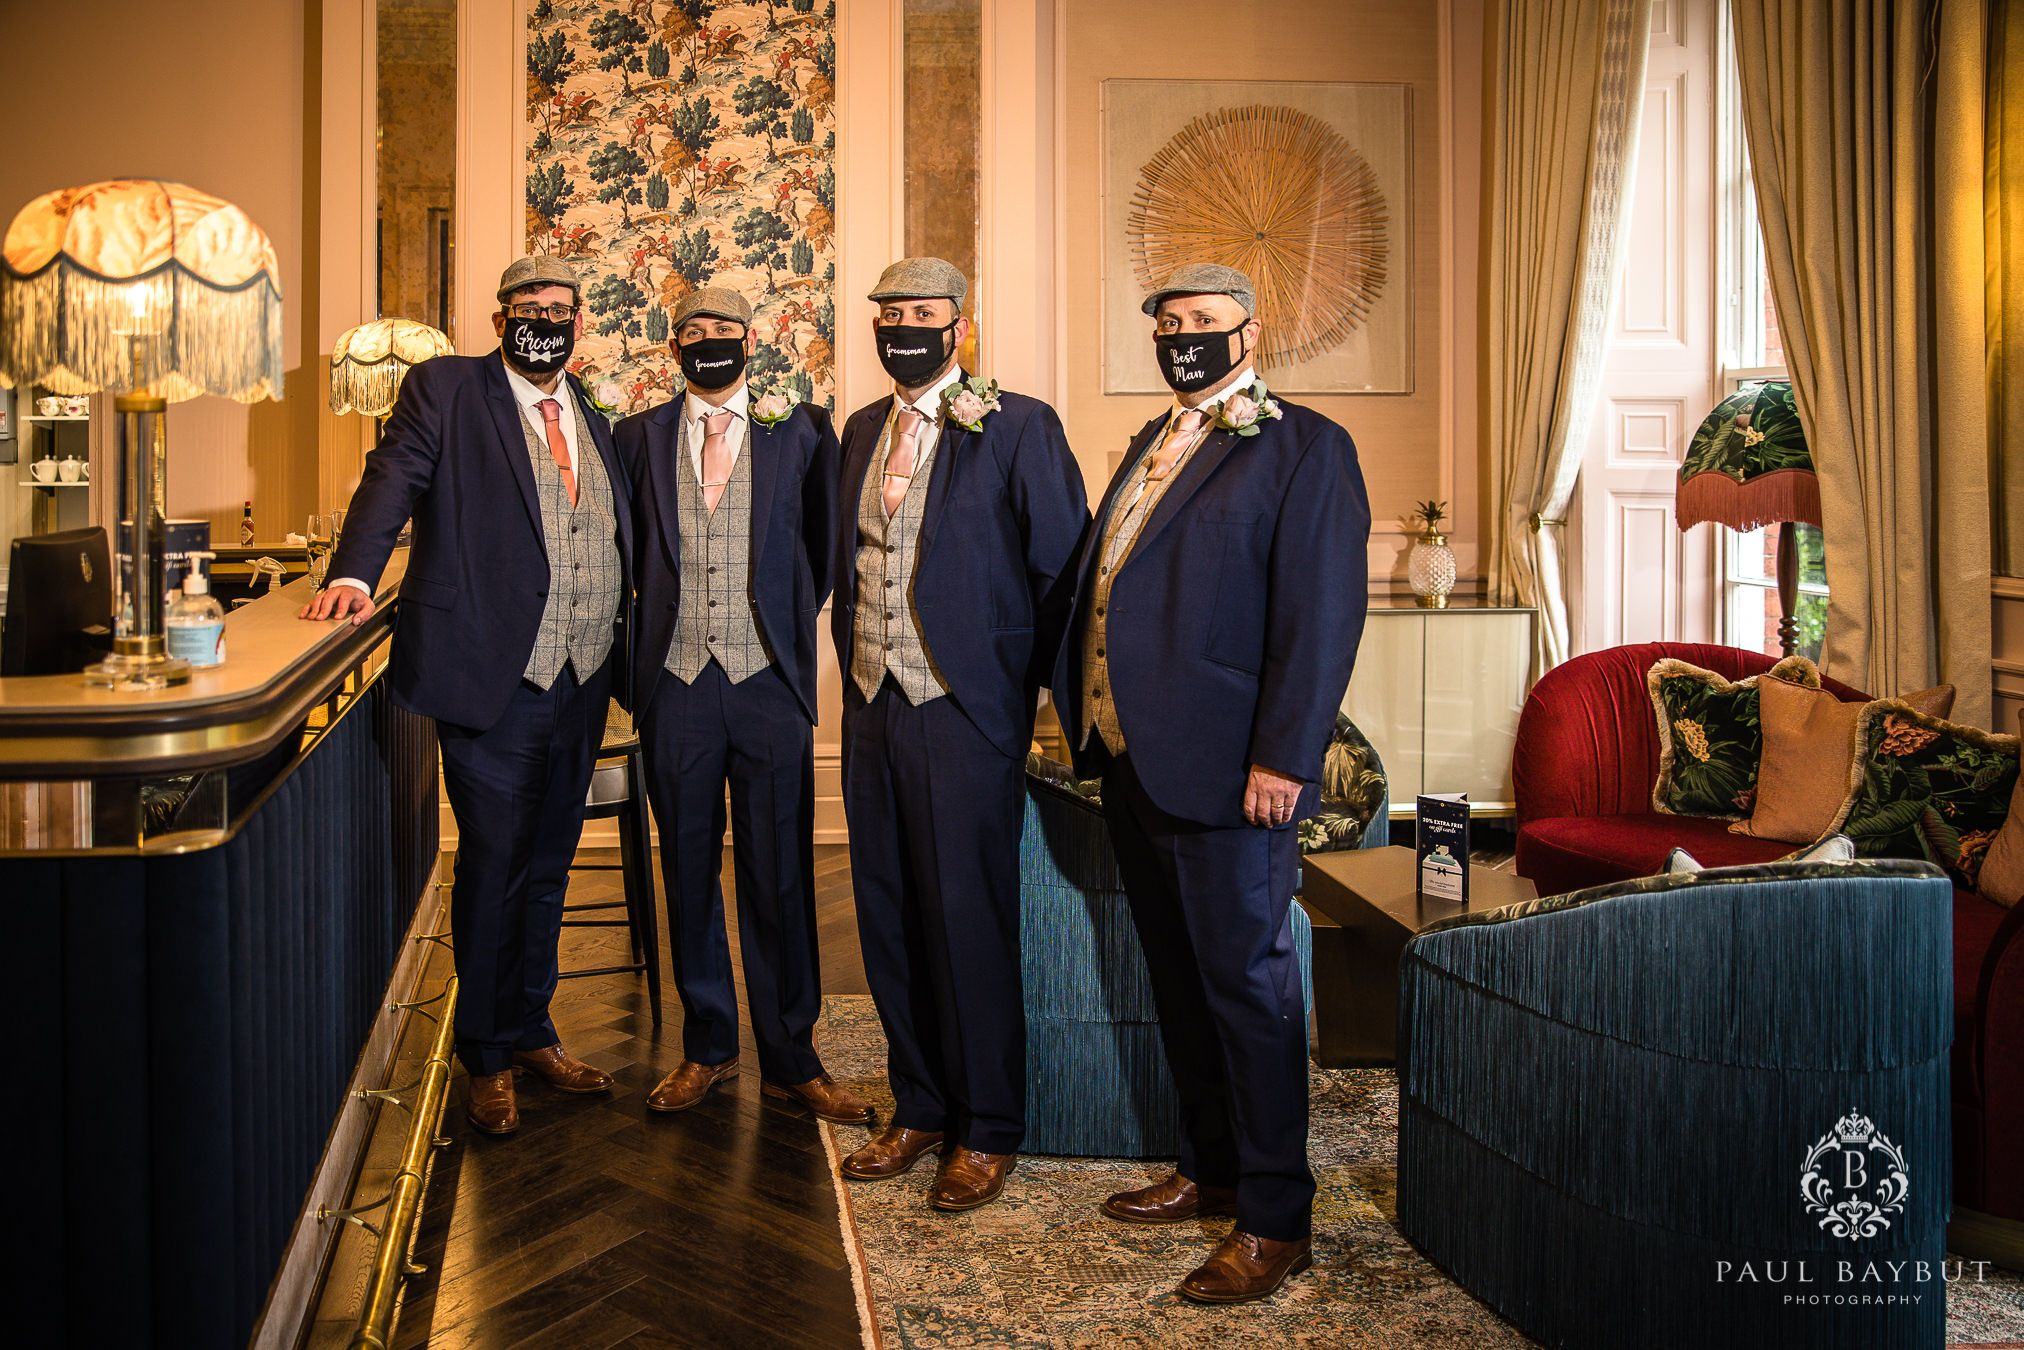 Groom and groomsmen wearing a covid masks at Mottram Hall wedding venue Christmas wedding